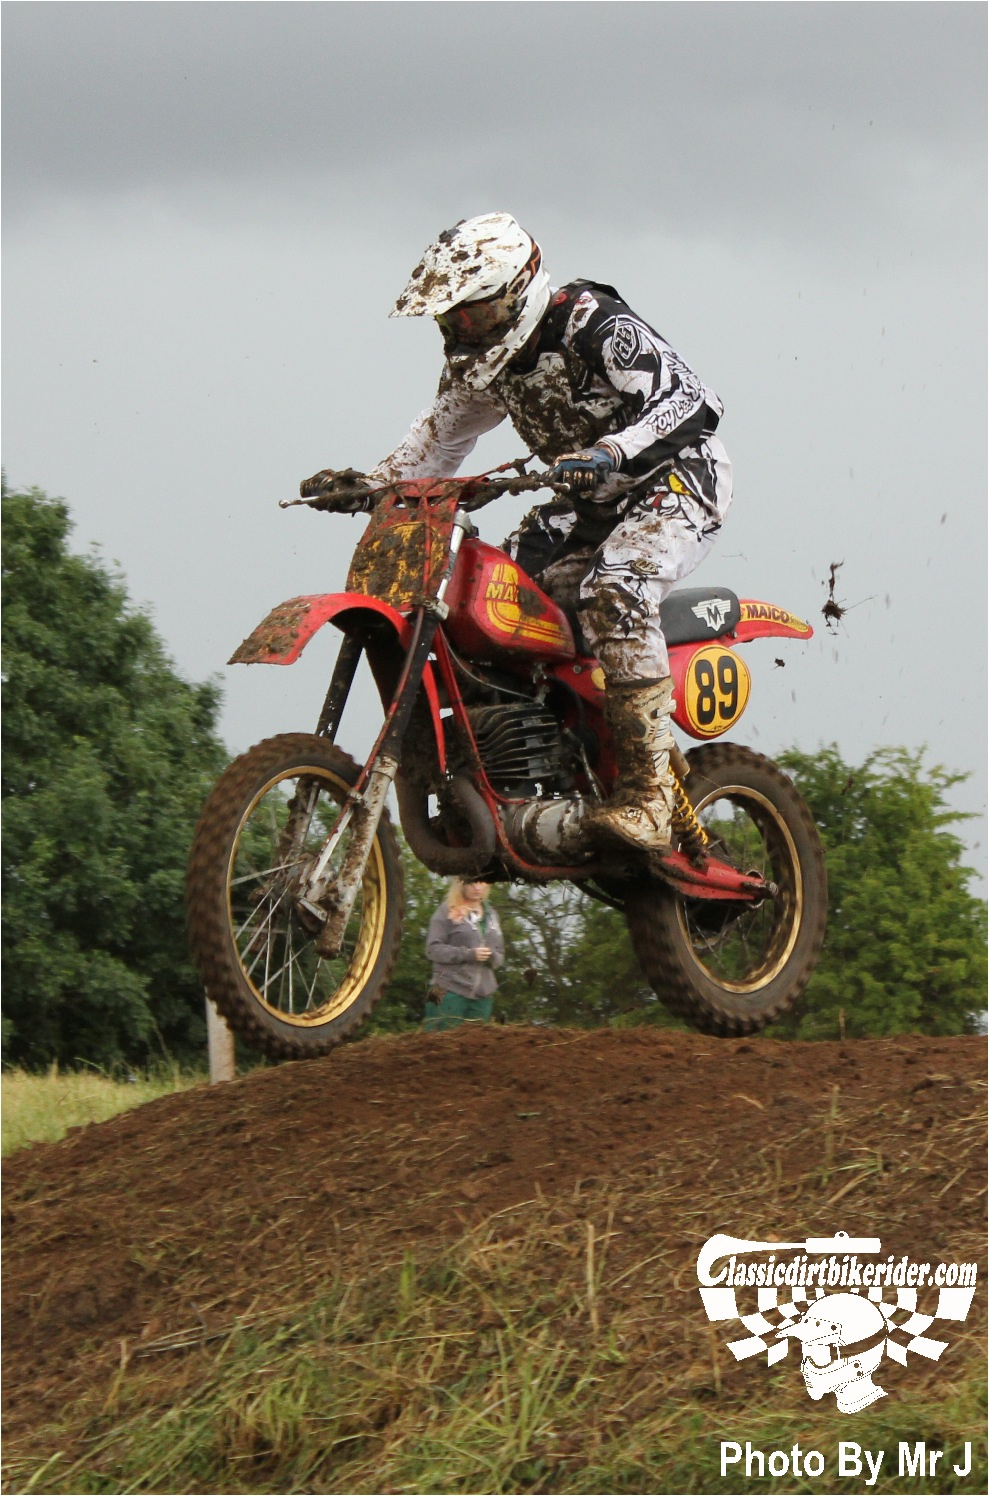 king of the castle 2015 photos Farleigh Castle twinshock motocross classicdirtbikerider.com 73